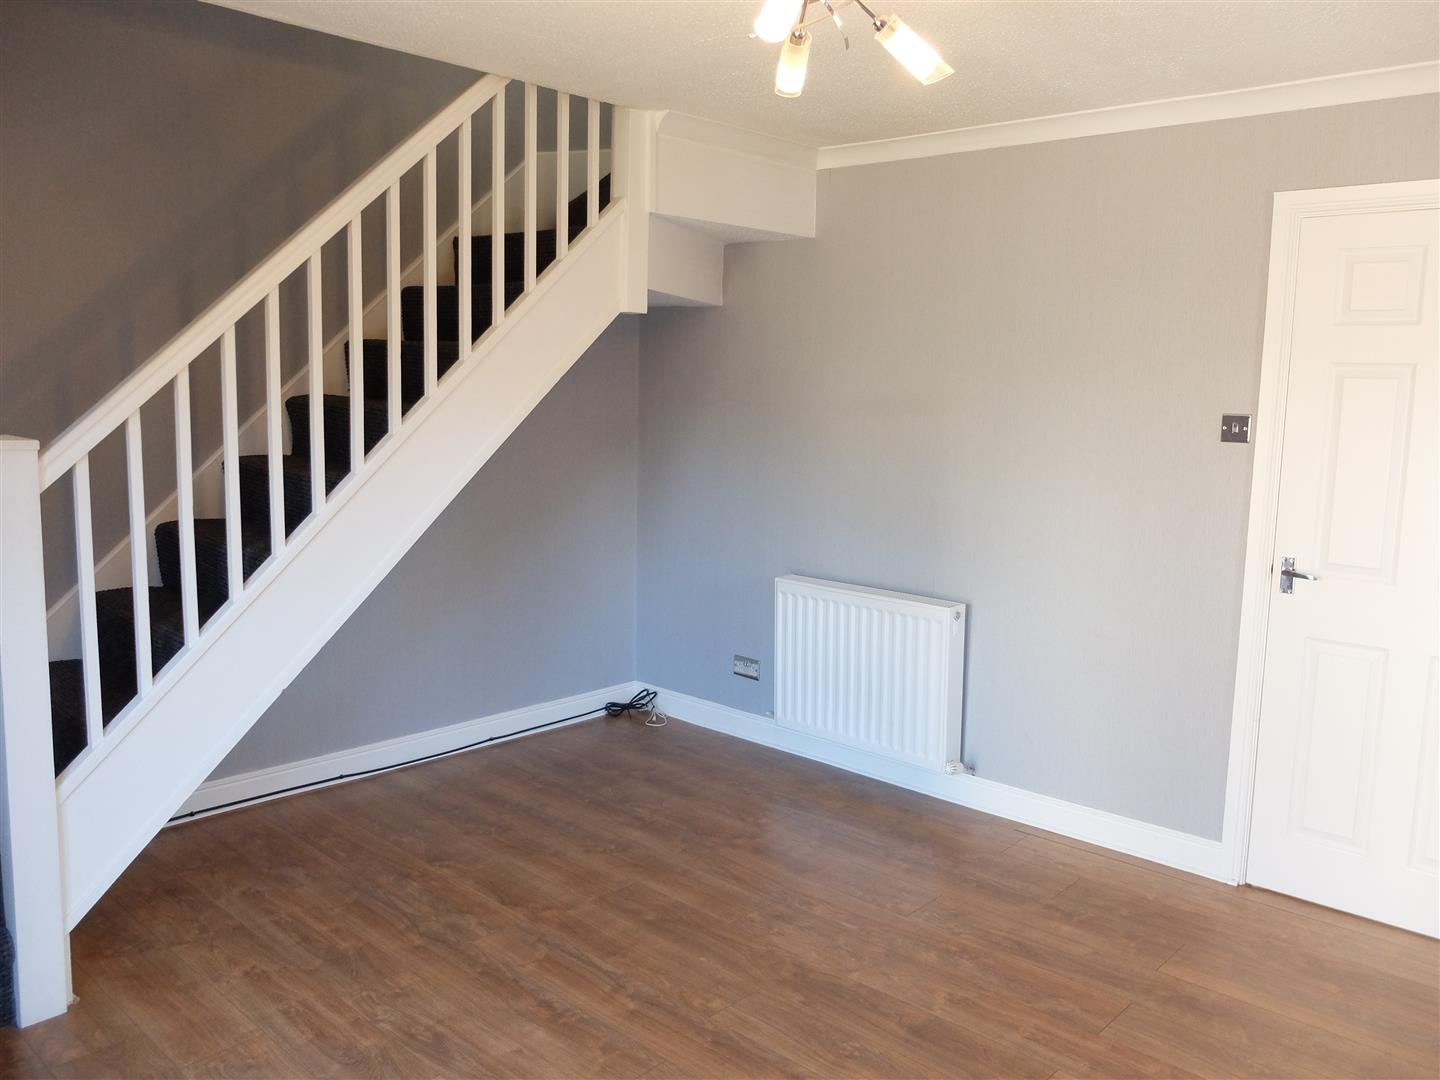 2 Bedrooms House - Semi-Detached On Sale 6 Scotby Gardens Carlisle